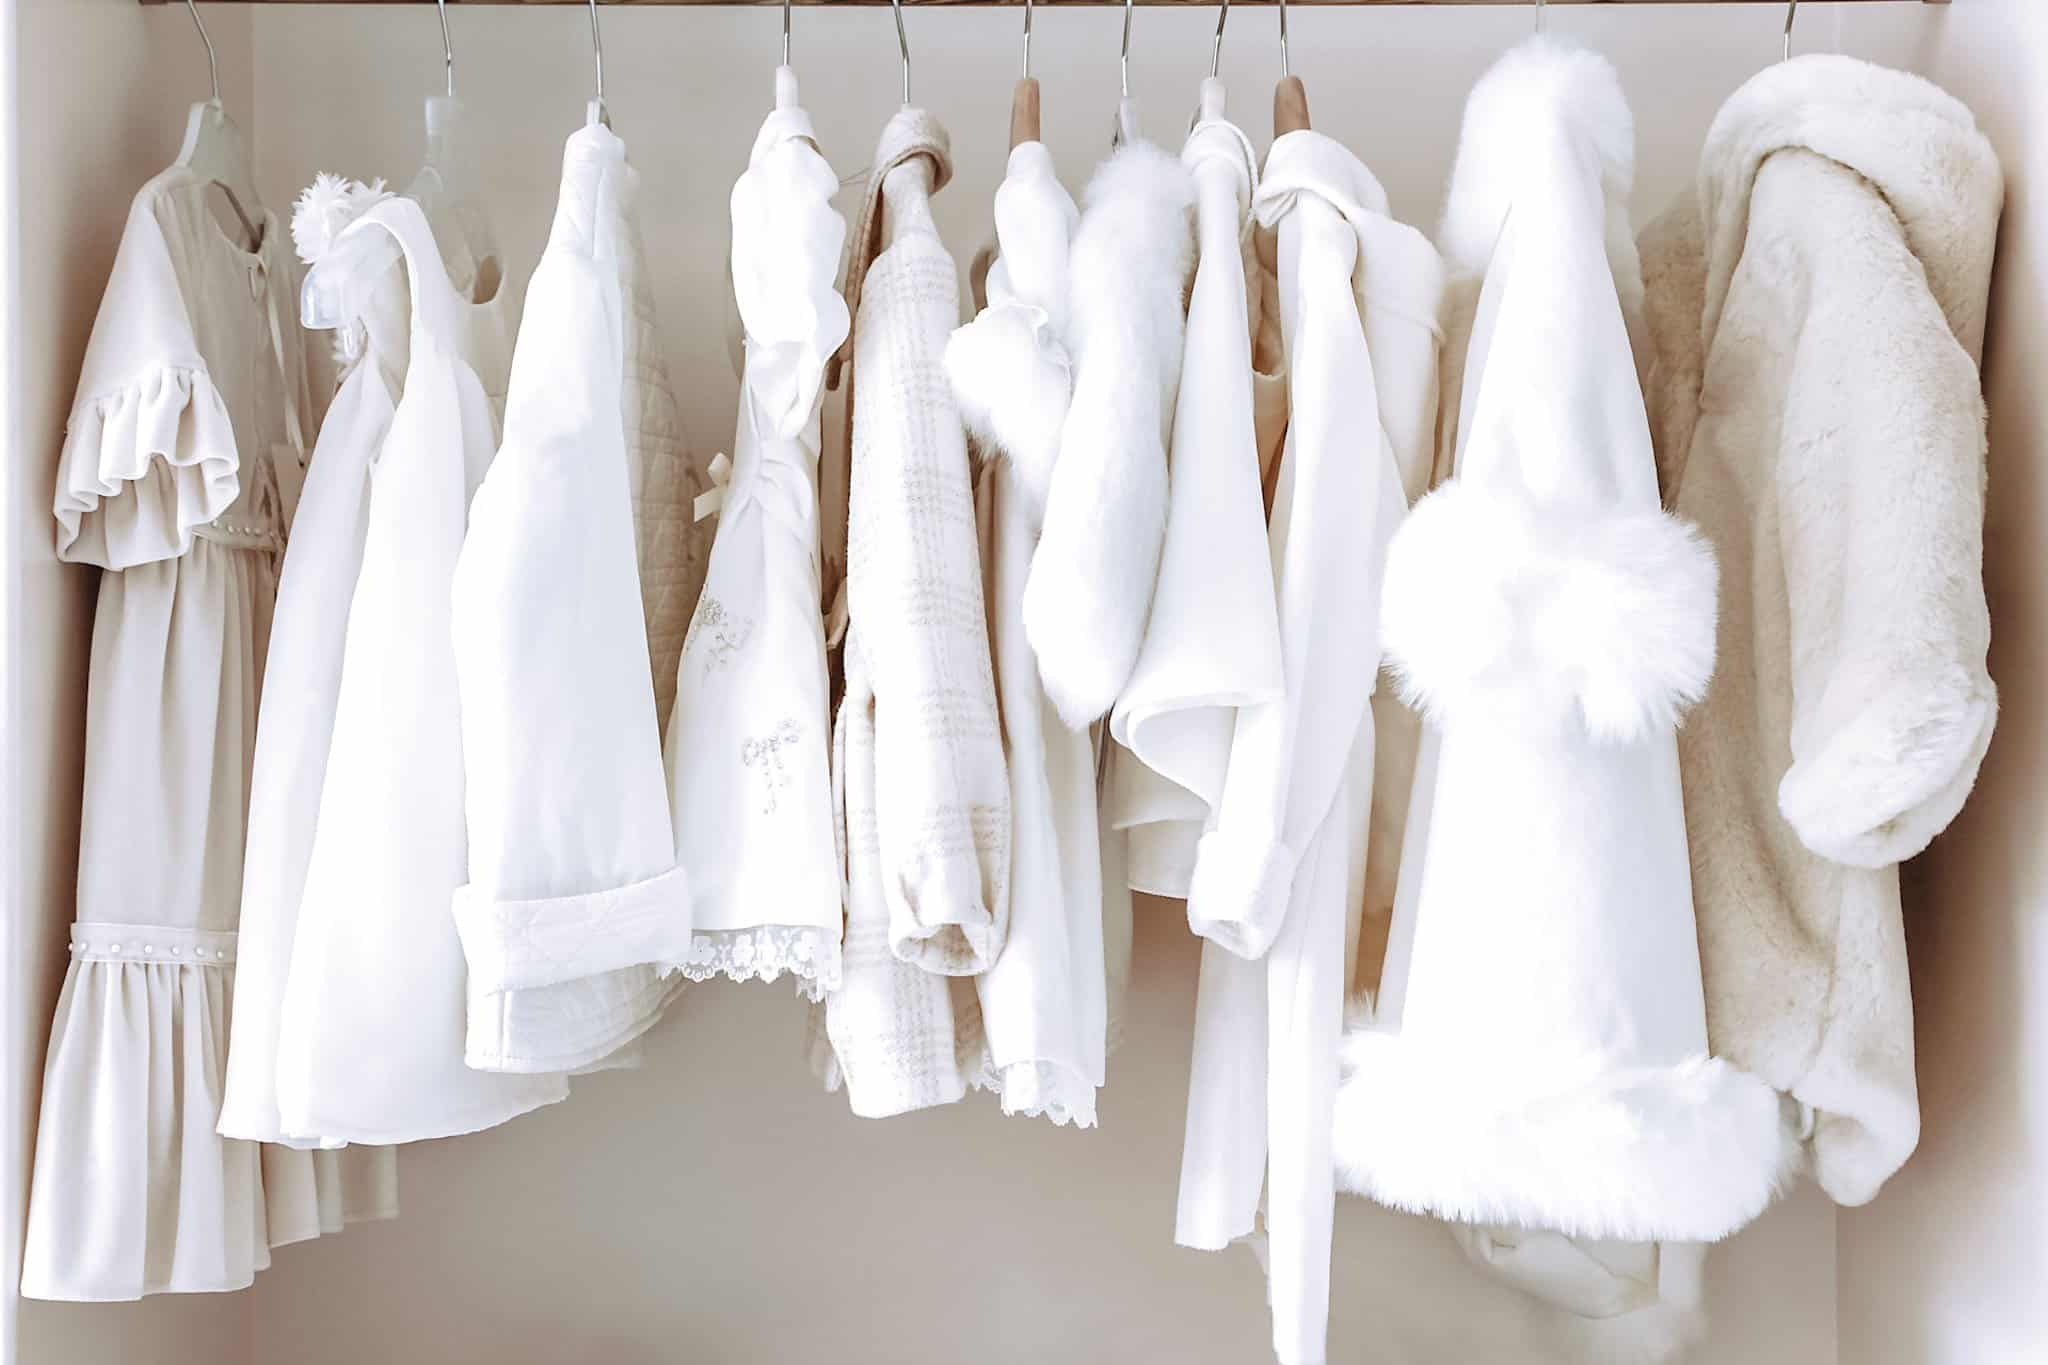 baby clothing hanging in closet